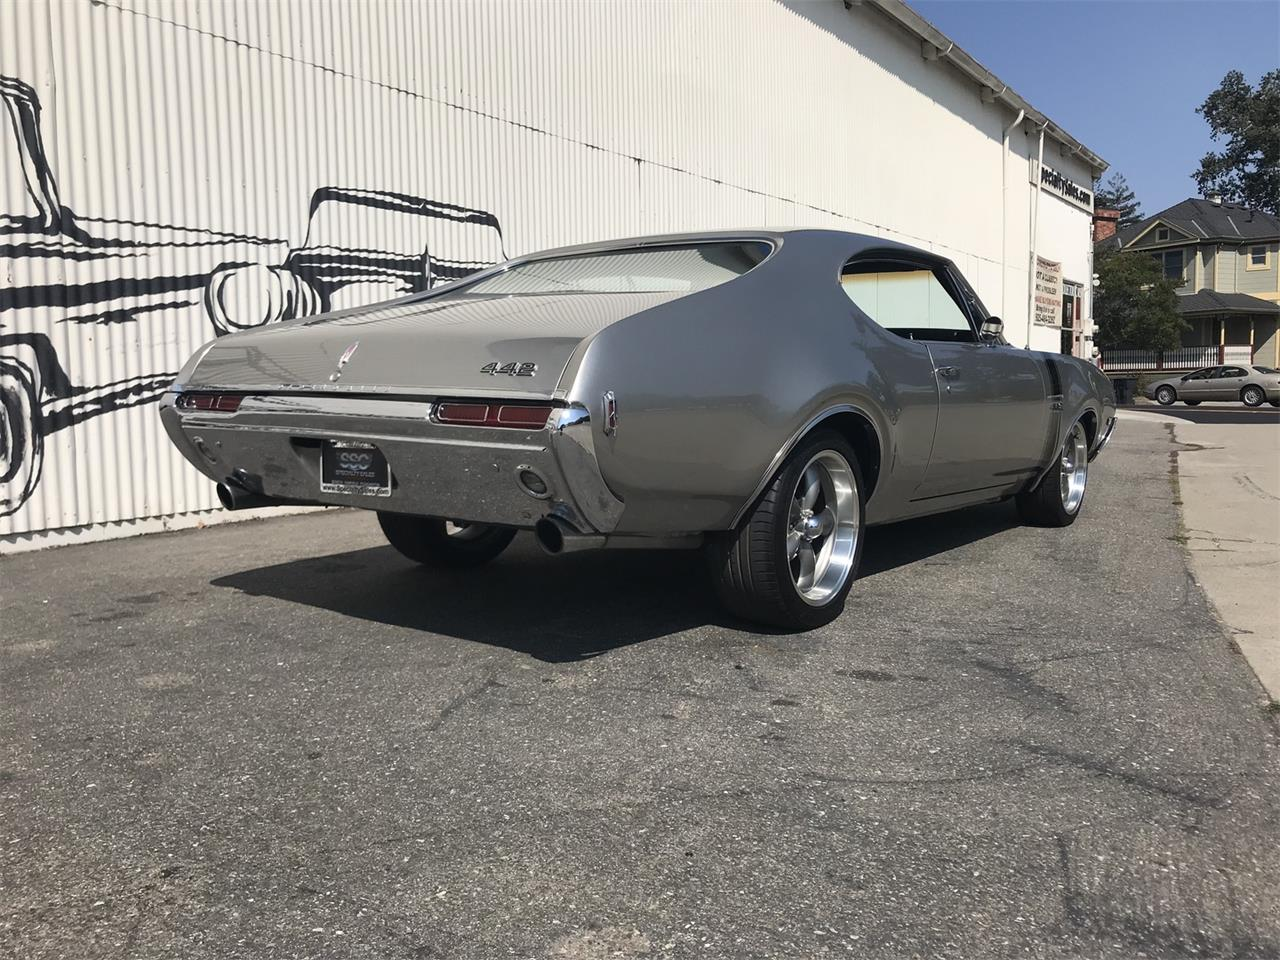 Large Picture of 1968 Oldsmobile 442 located in Fairfield California - $33,990.00 - OBCW